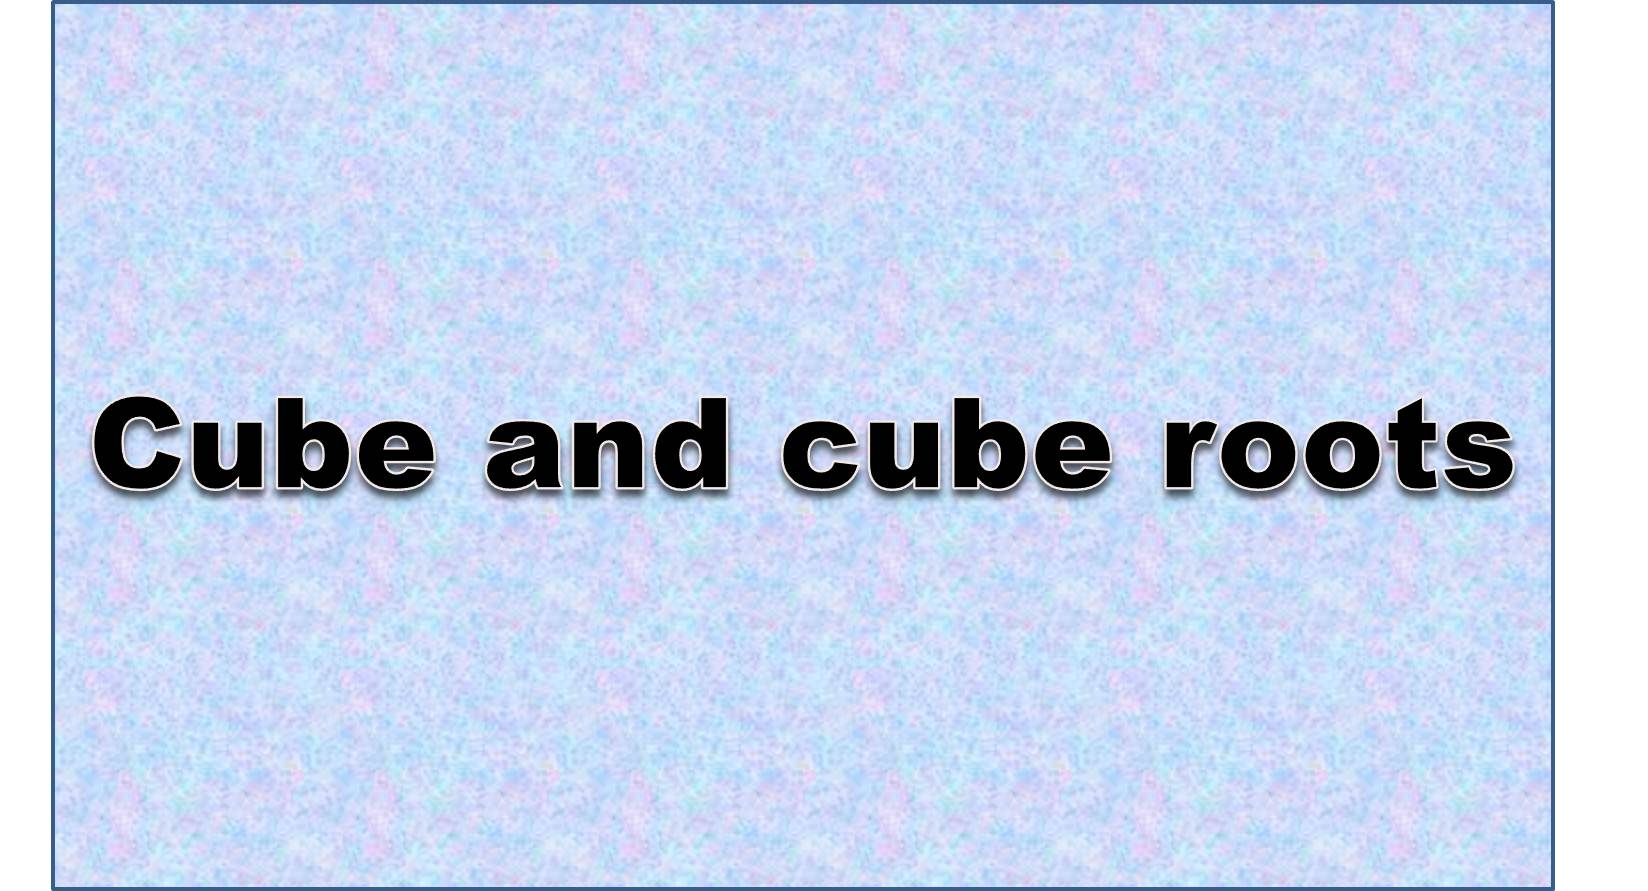 http://study.aisectonline.com/images/Cube-root of a non-perfect cube.jpg